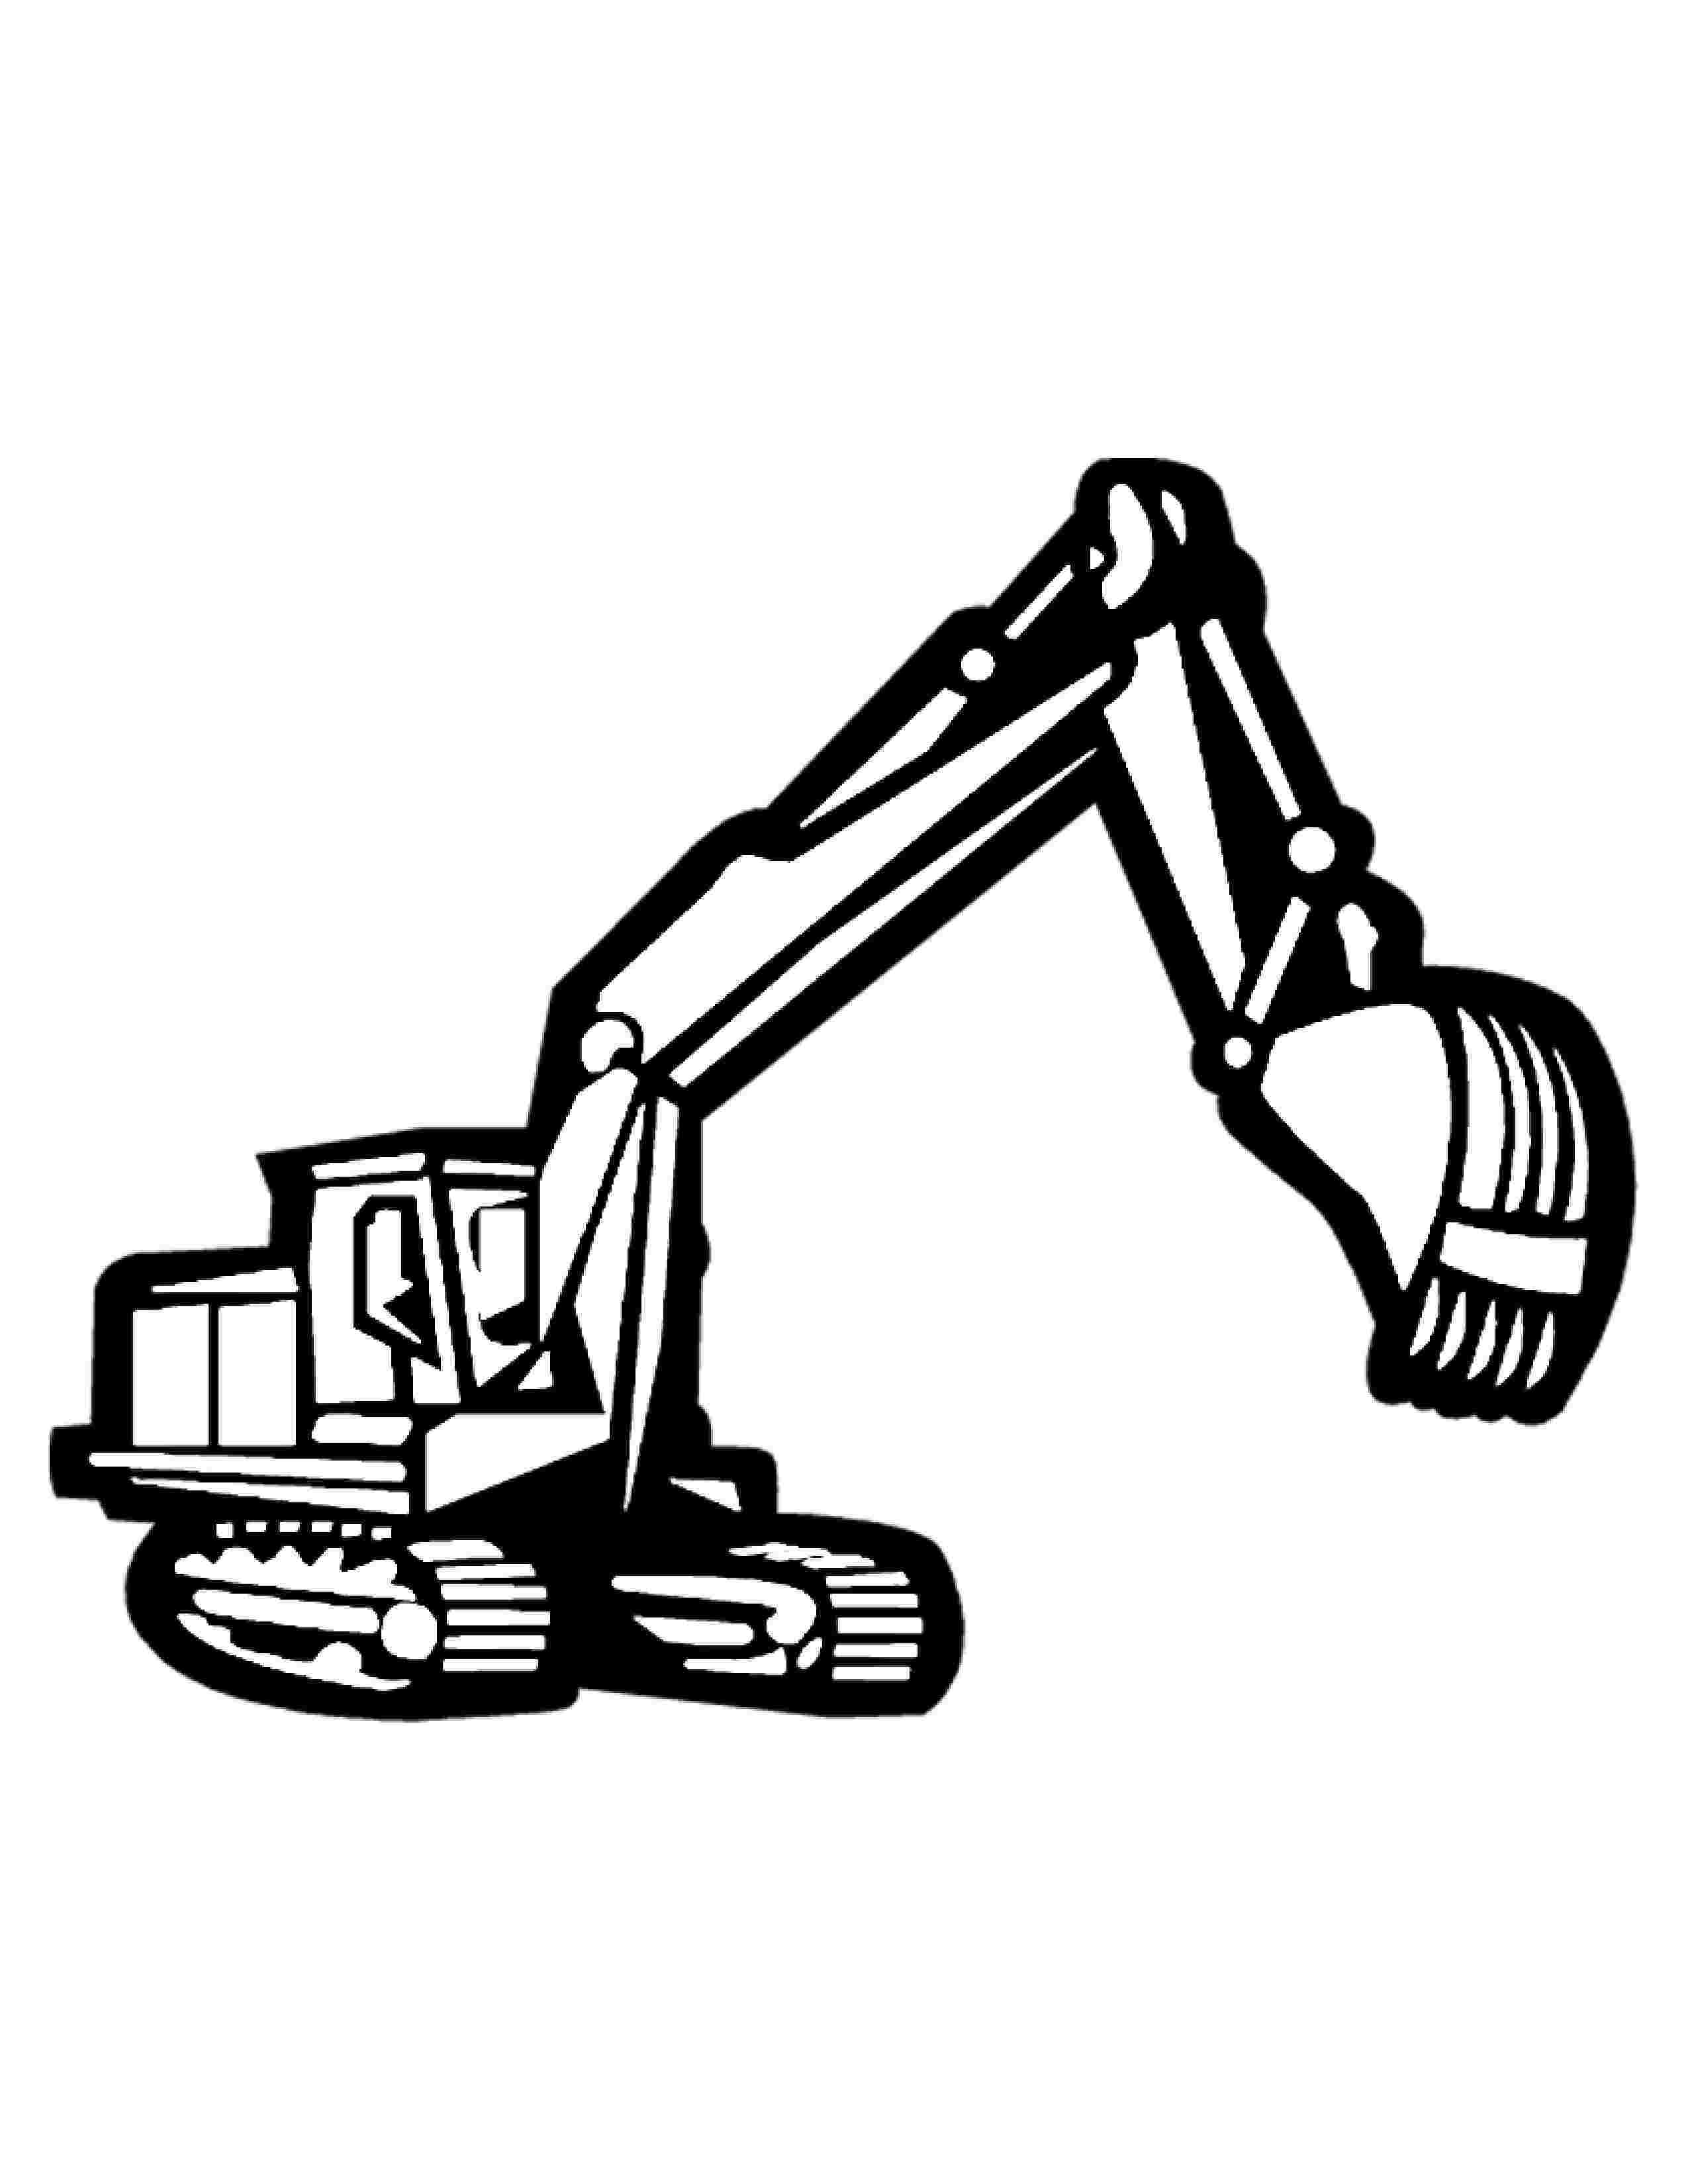 construction truck coloring pages construction truck tonka coloring page for kids pages truck coloring construction